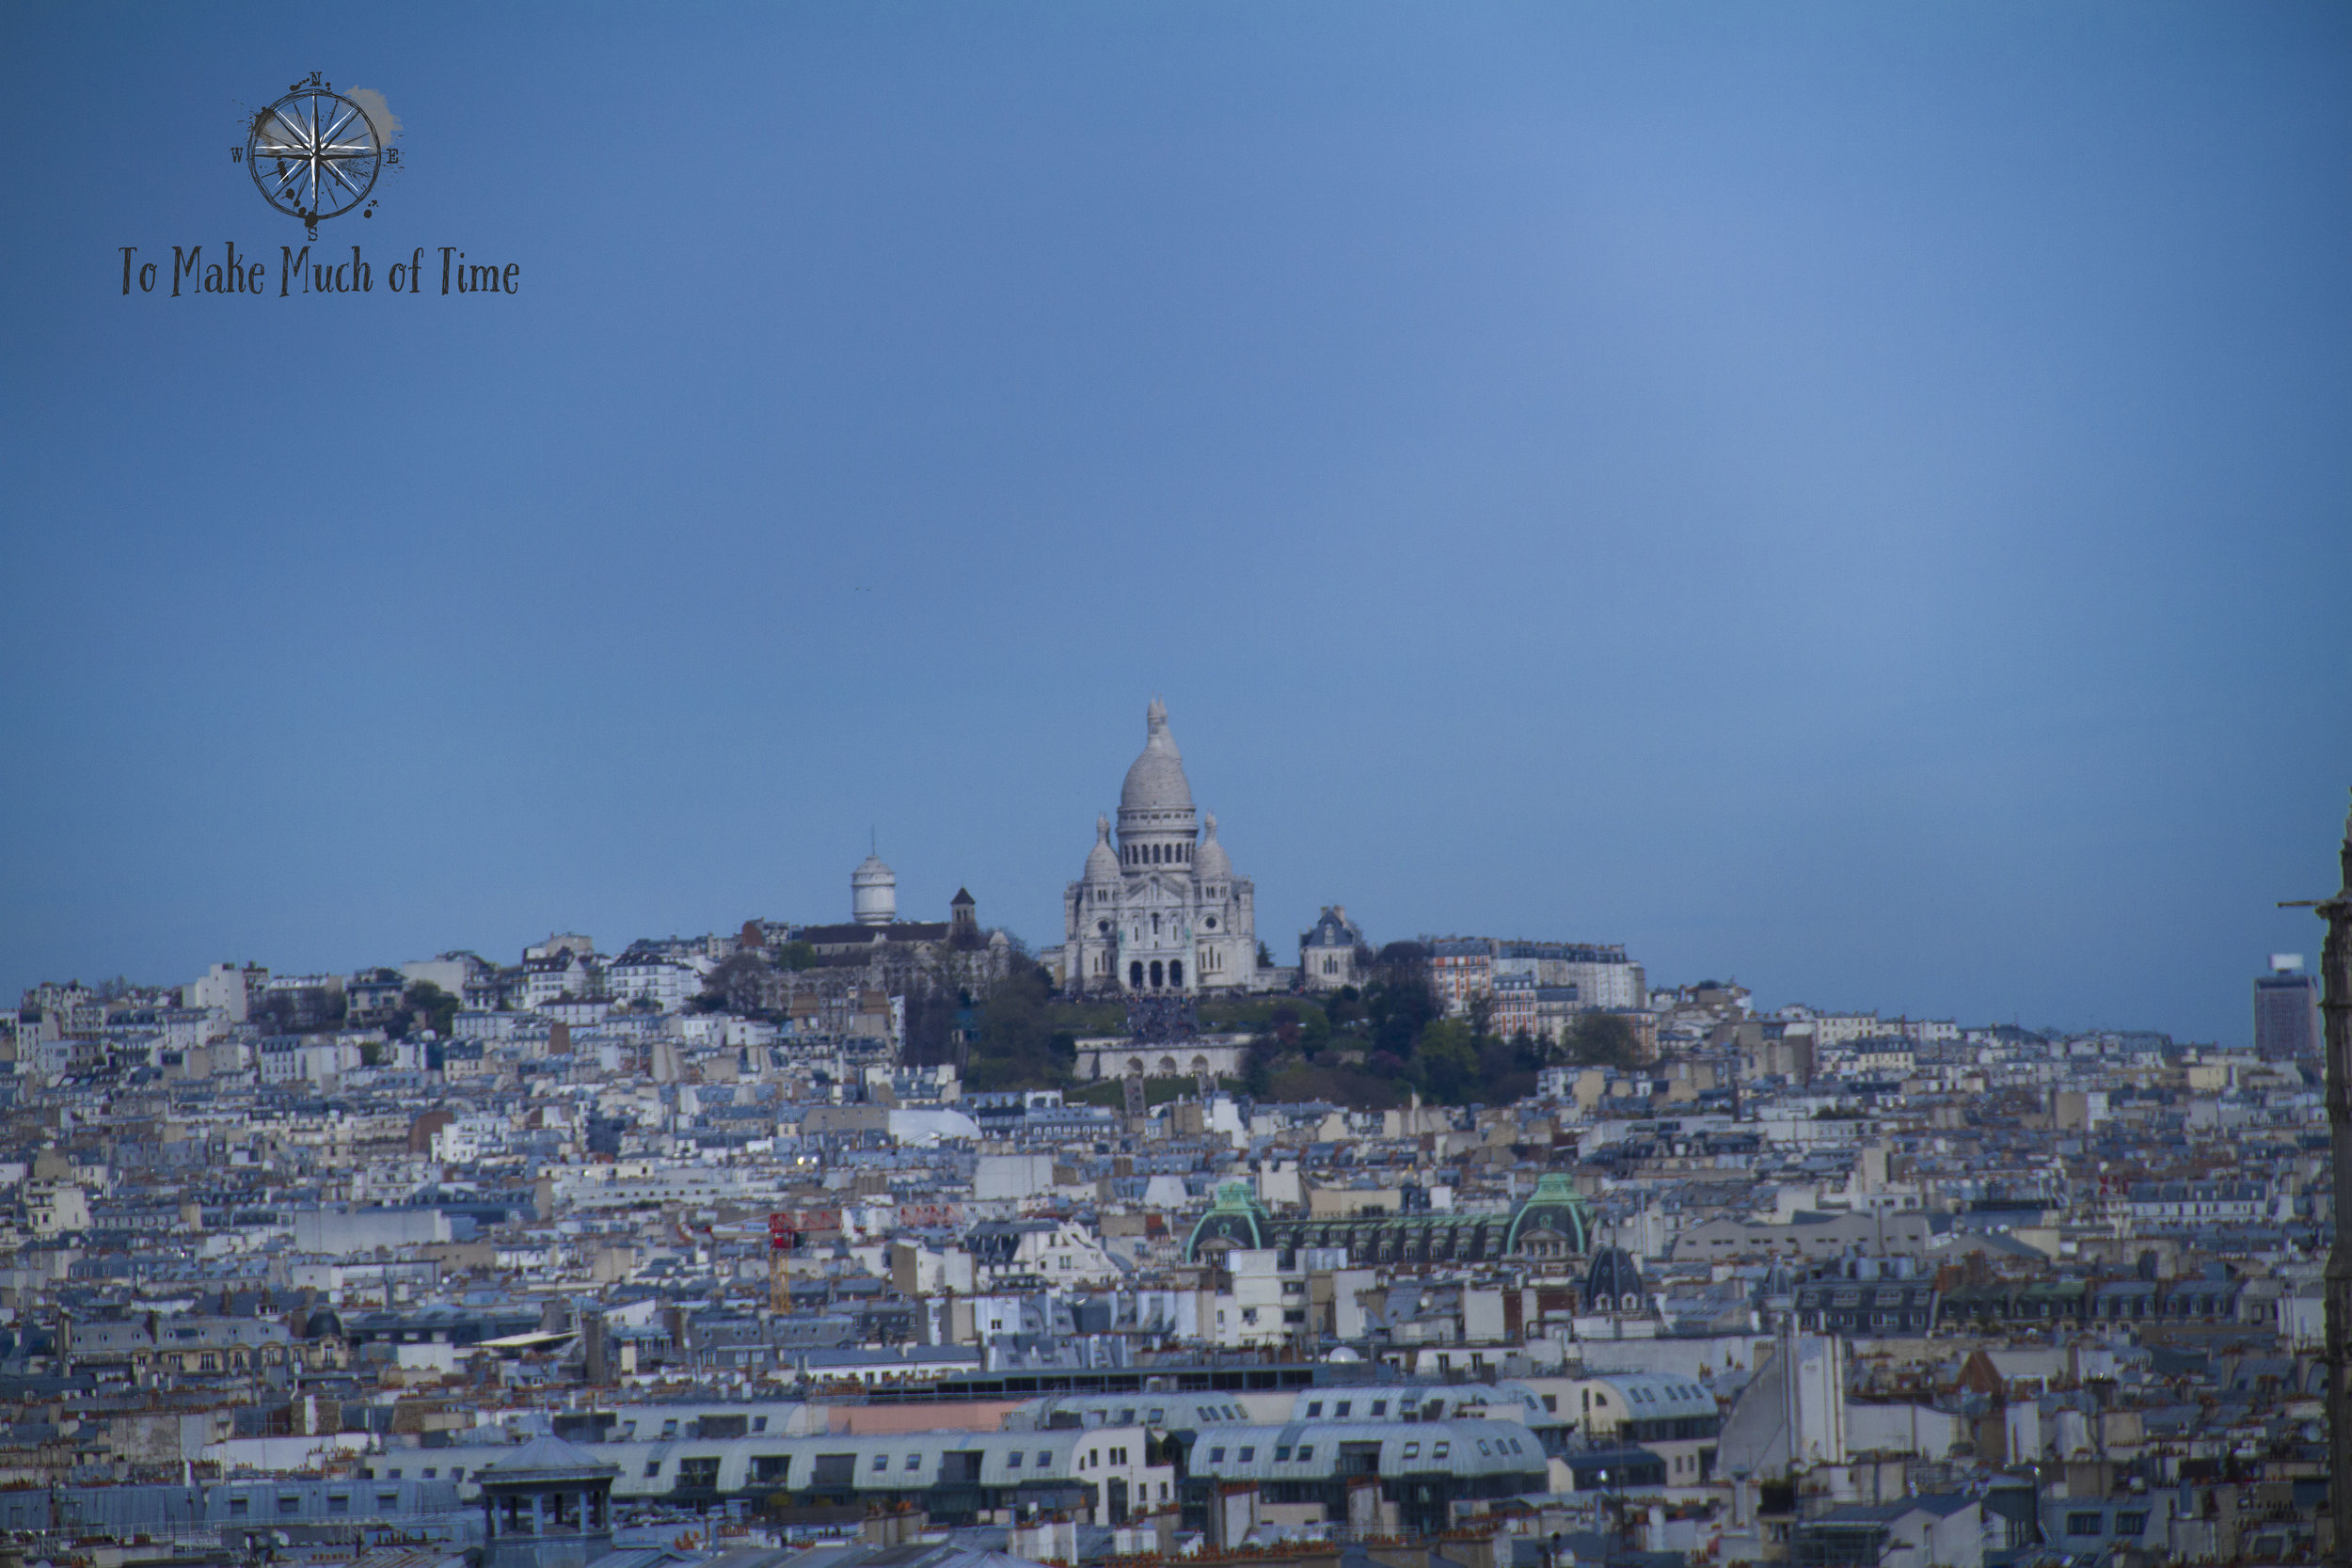 Montmartre waaay off in the distance. Next trip we'll have to visit this amazing site.